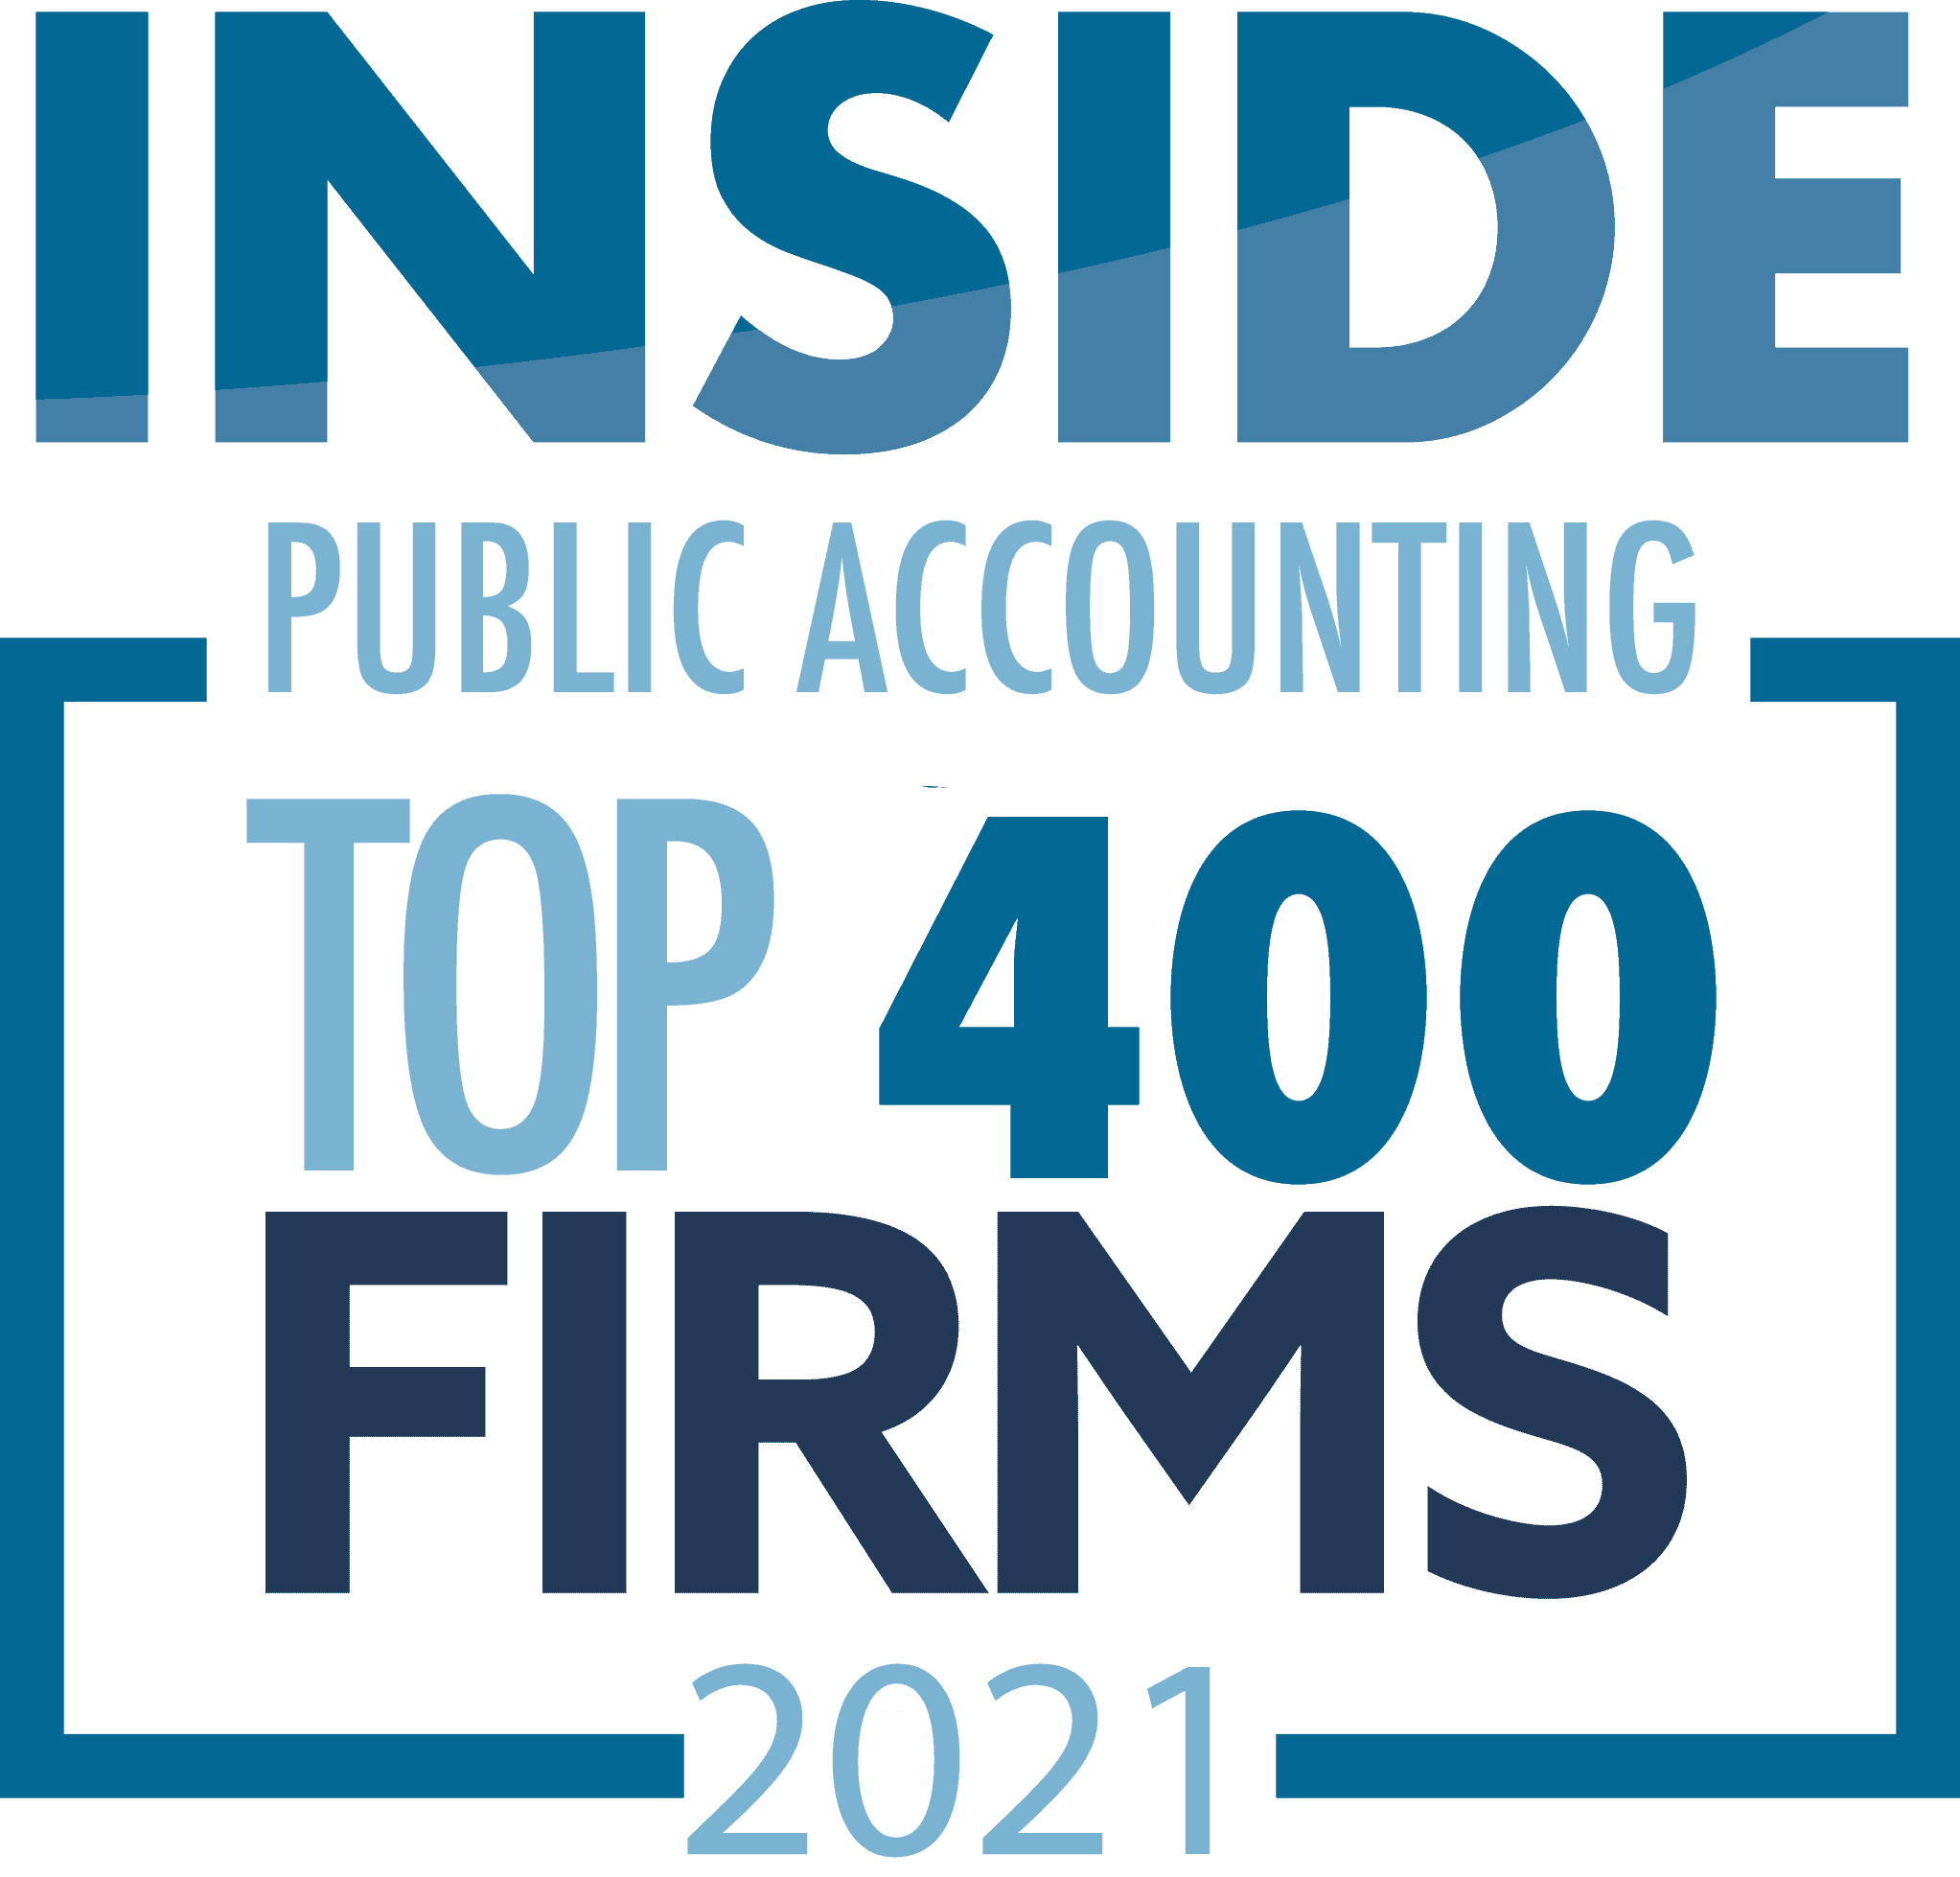 Inside Public Accounting Top 400 Firm 2021